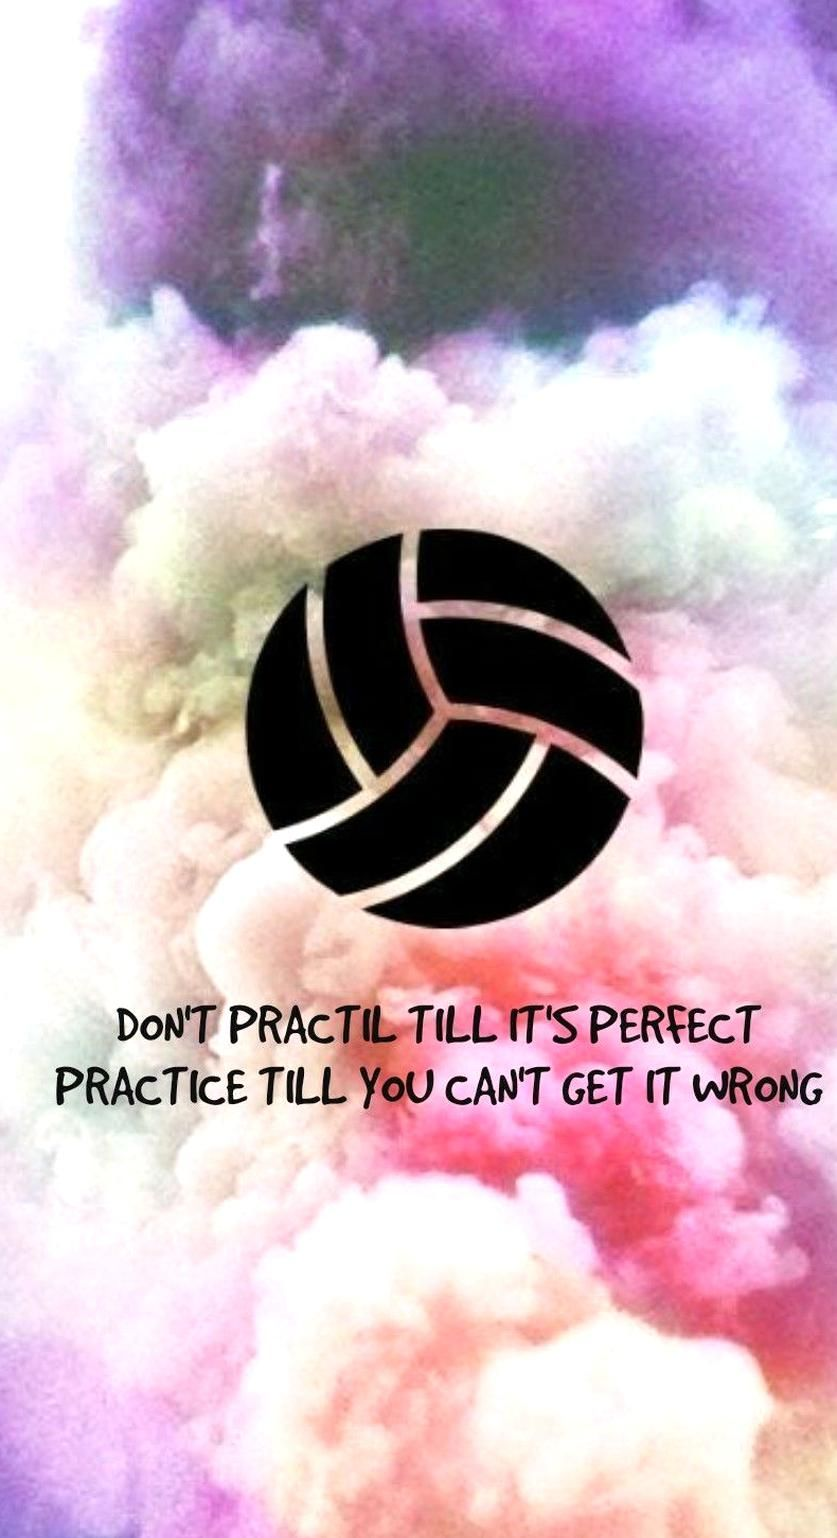 73 Wallpaper Motivation Wallpaper Volleyball Quotes In 2020 Volleyball Backgrounds Volleyball Cool Stuff